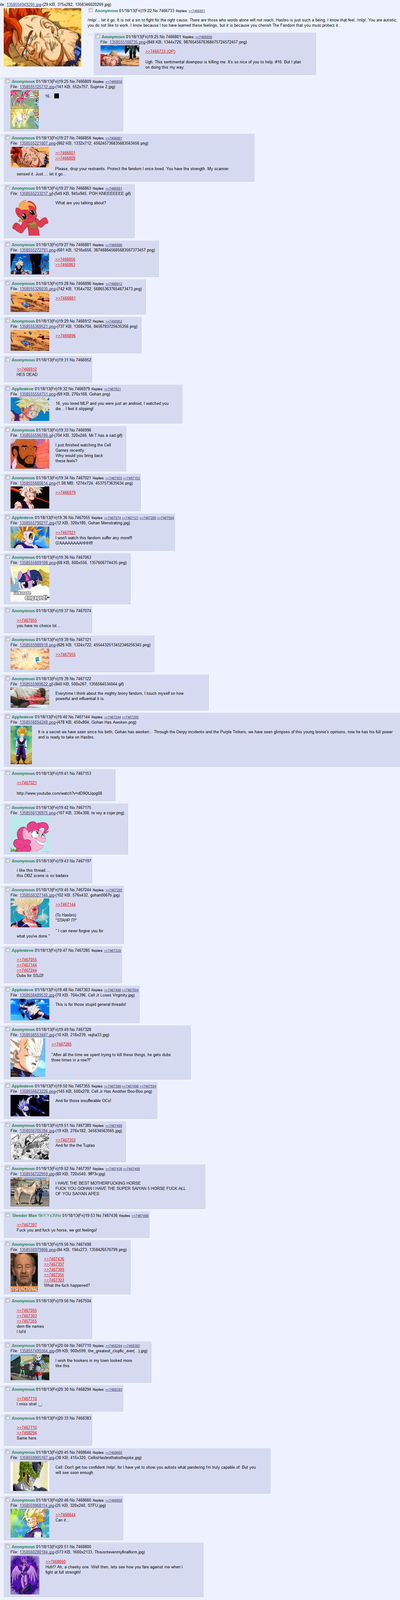 Android #16 has a message for /mlp/